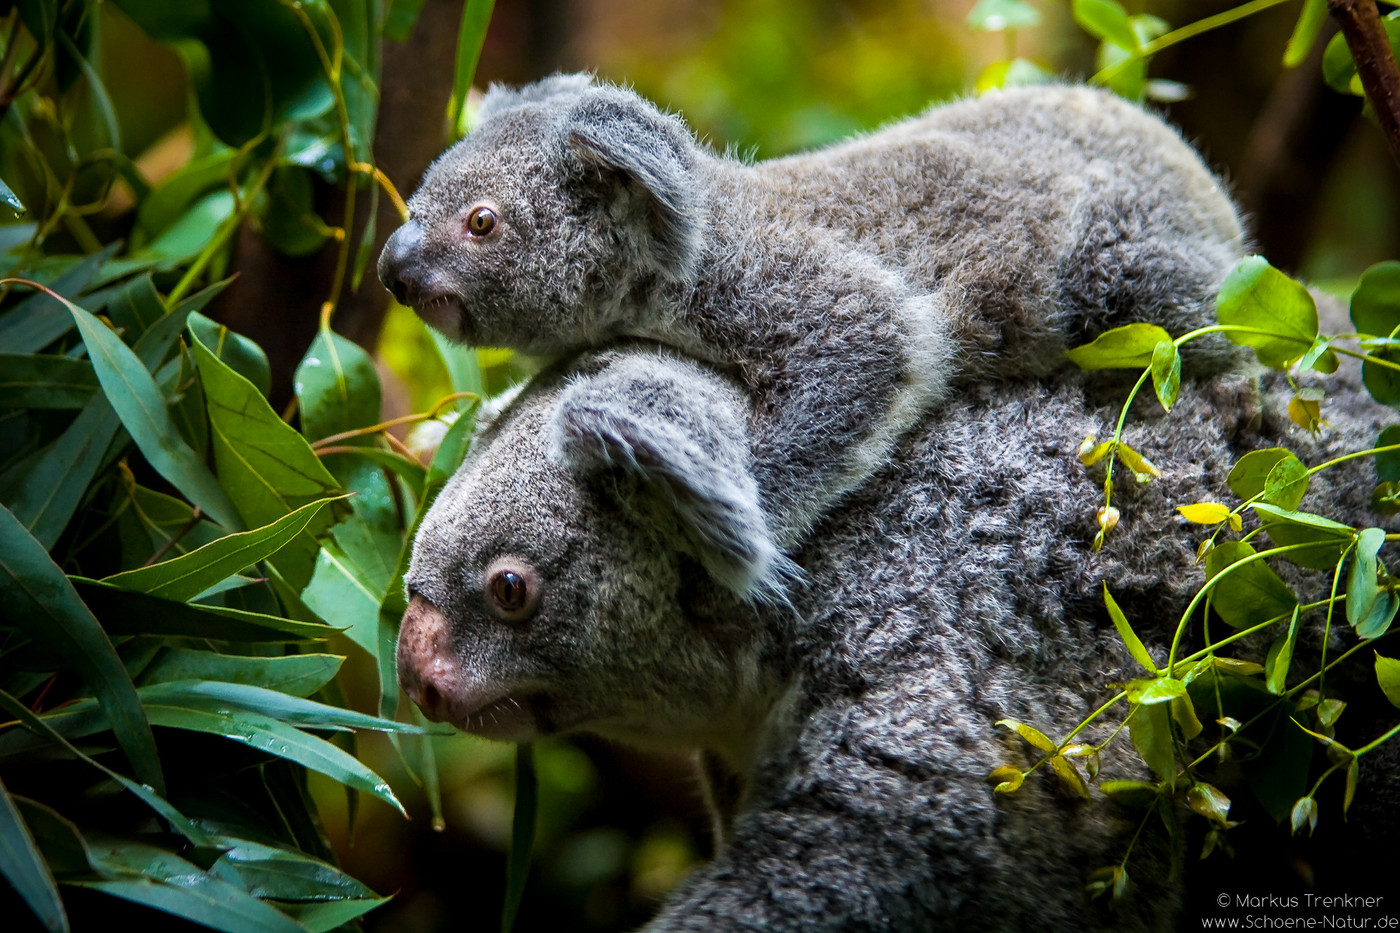 Koala [Phascolarctos cinereus]